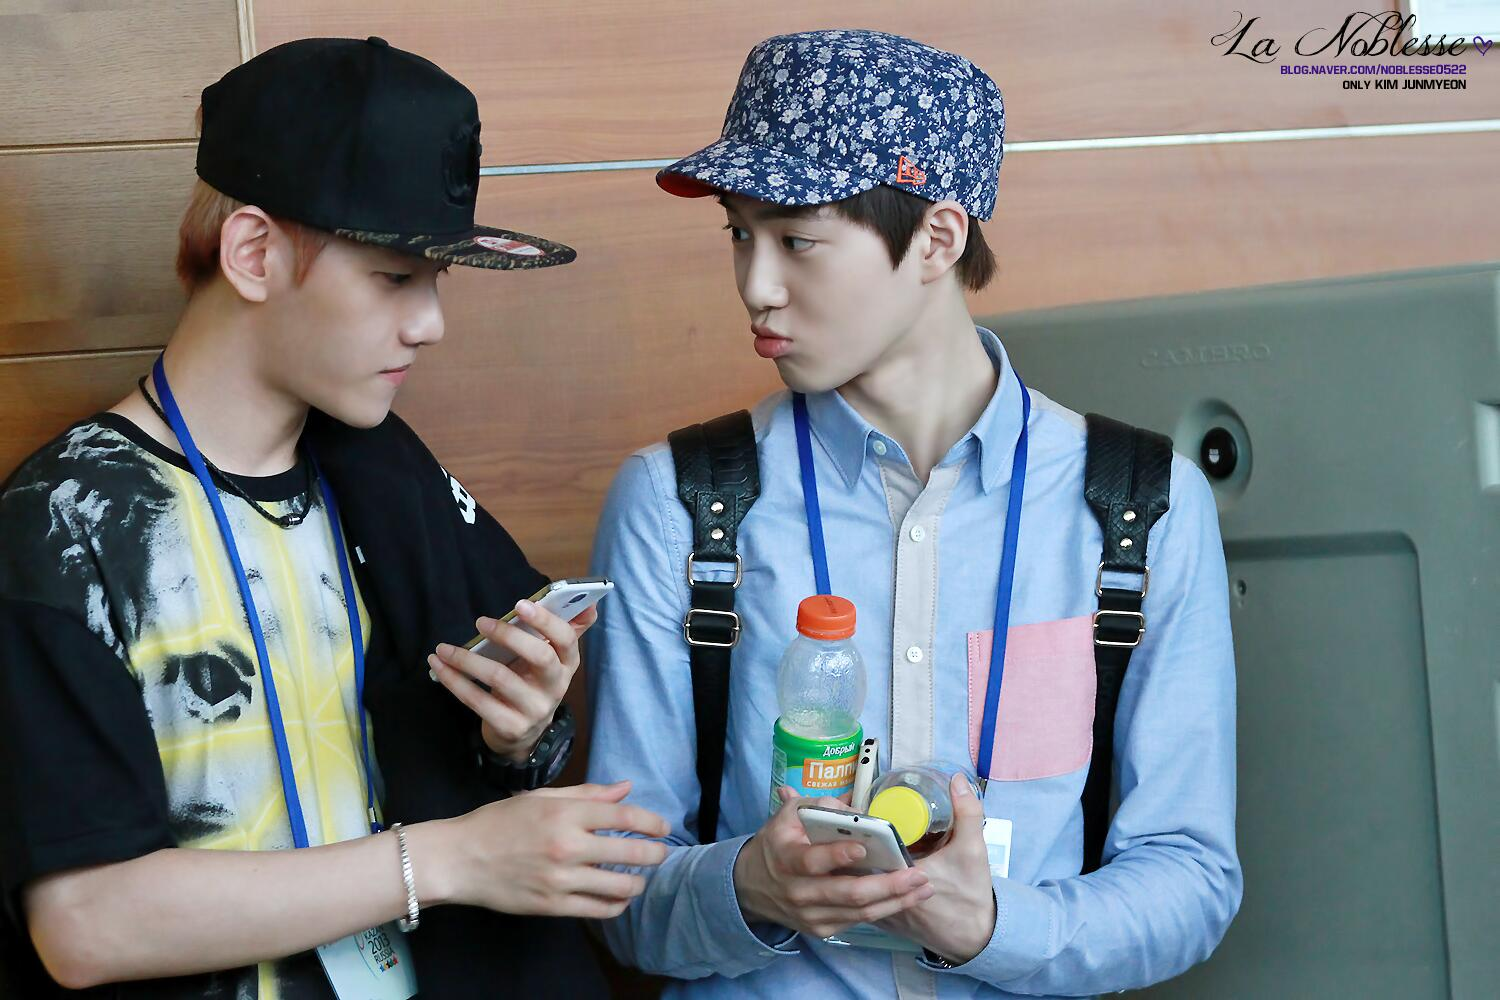 130715  Moscow Airport SUHO 9P Baekhyun handed Suho his empty bottle ㅋㅋㅋㅋ 둘다 너무 귀여워^^ ▷http://t.co/zutqYYRE27 http://t.co/yUIWFB2COS